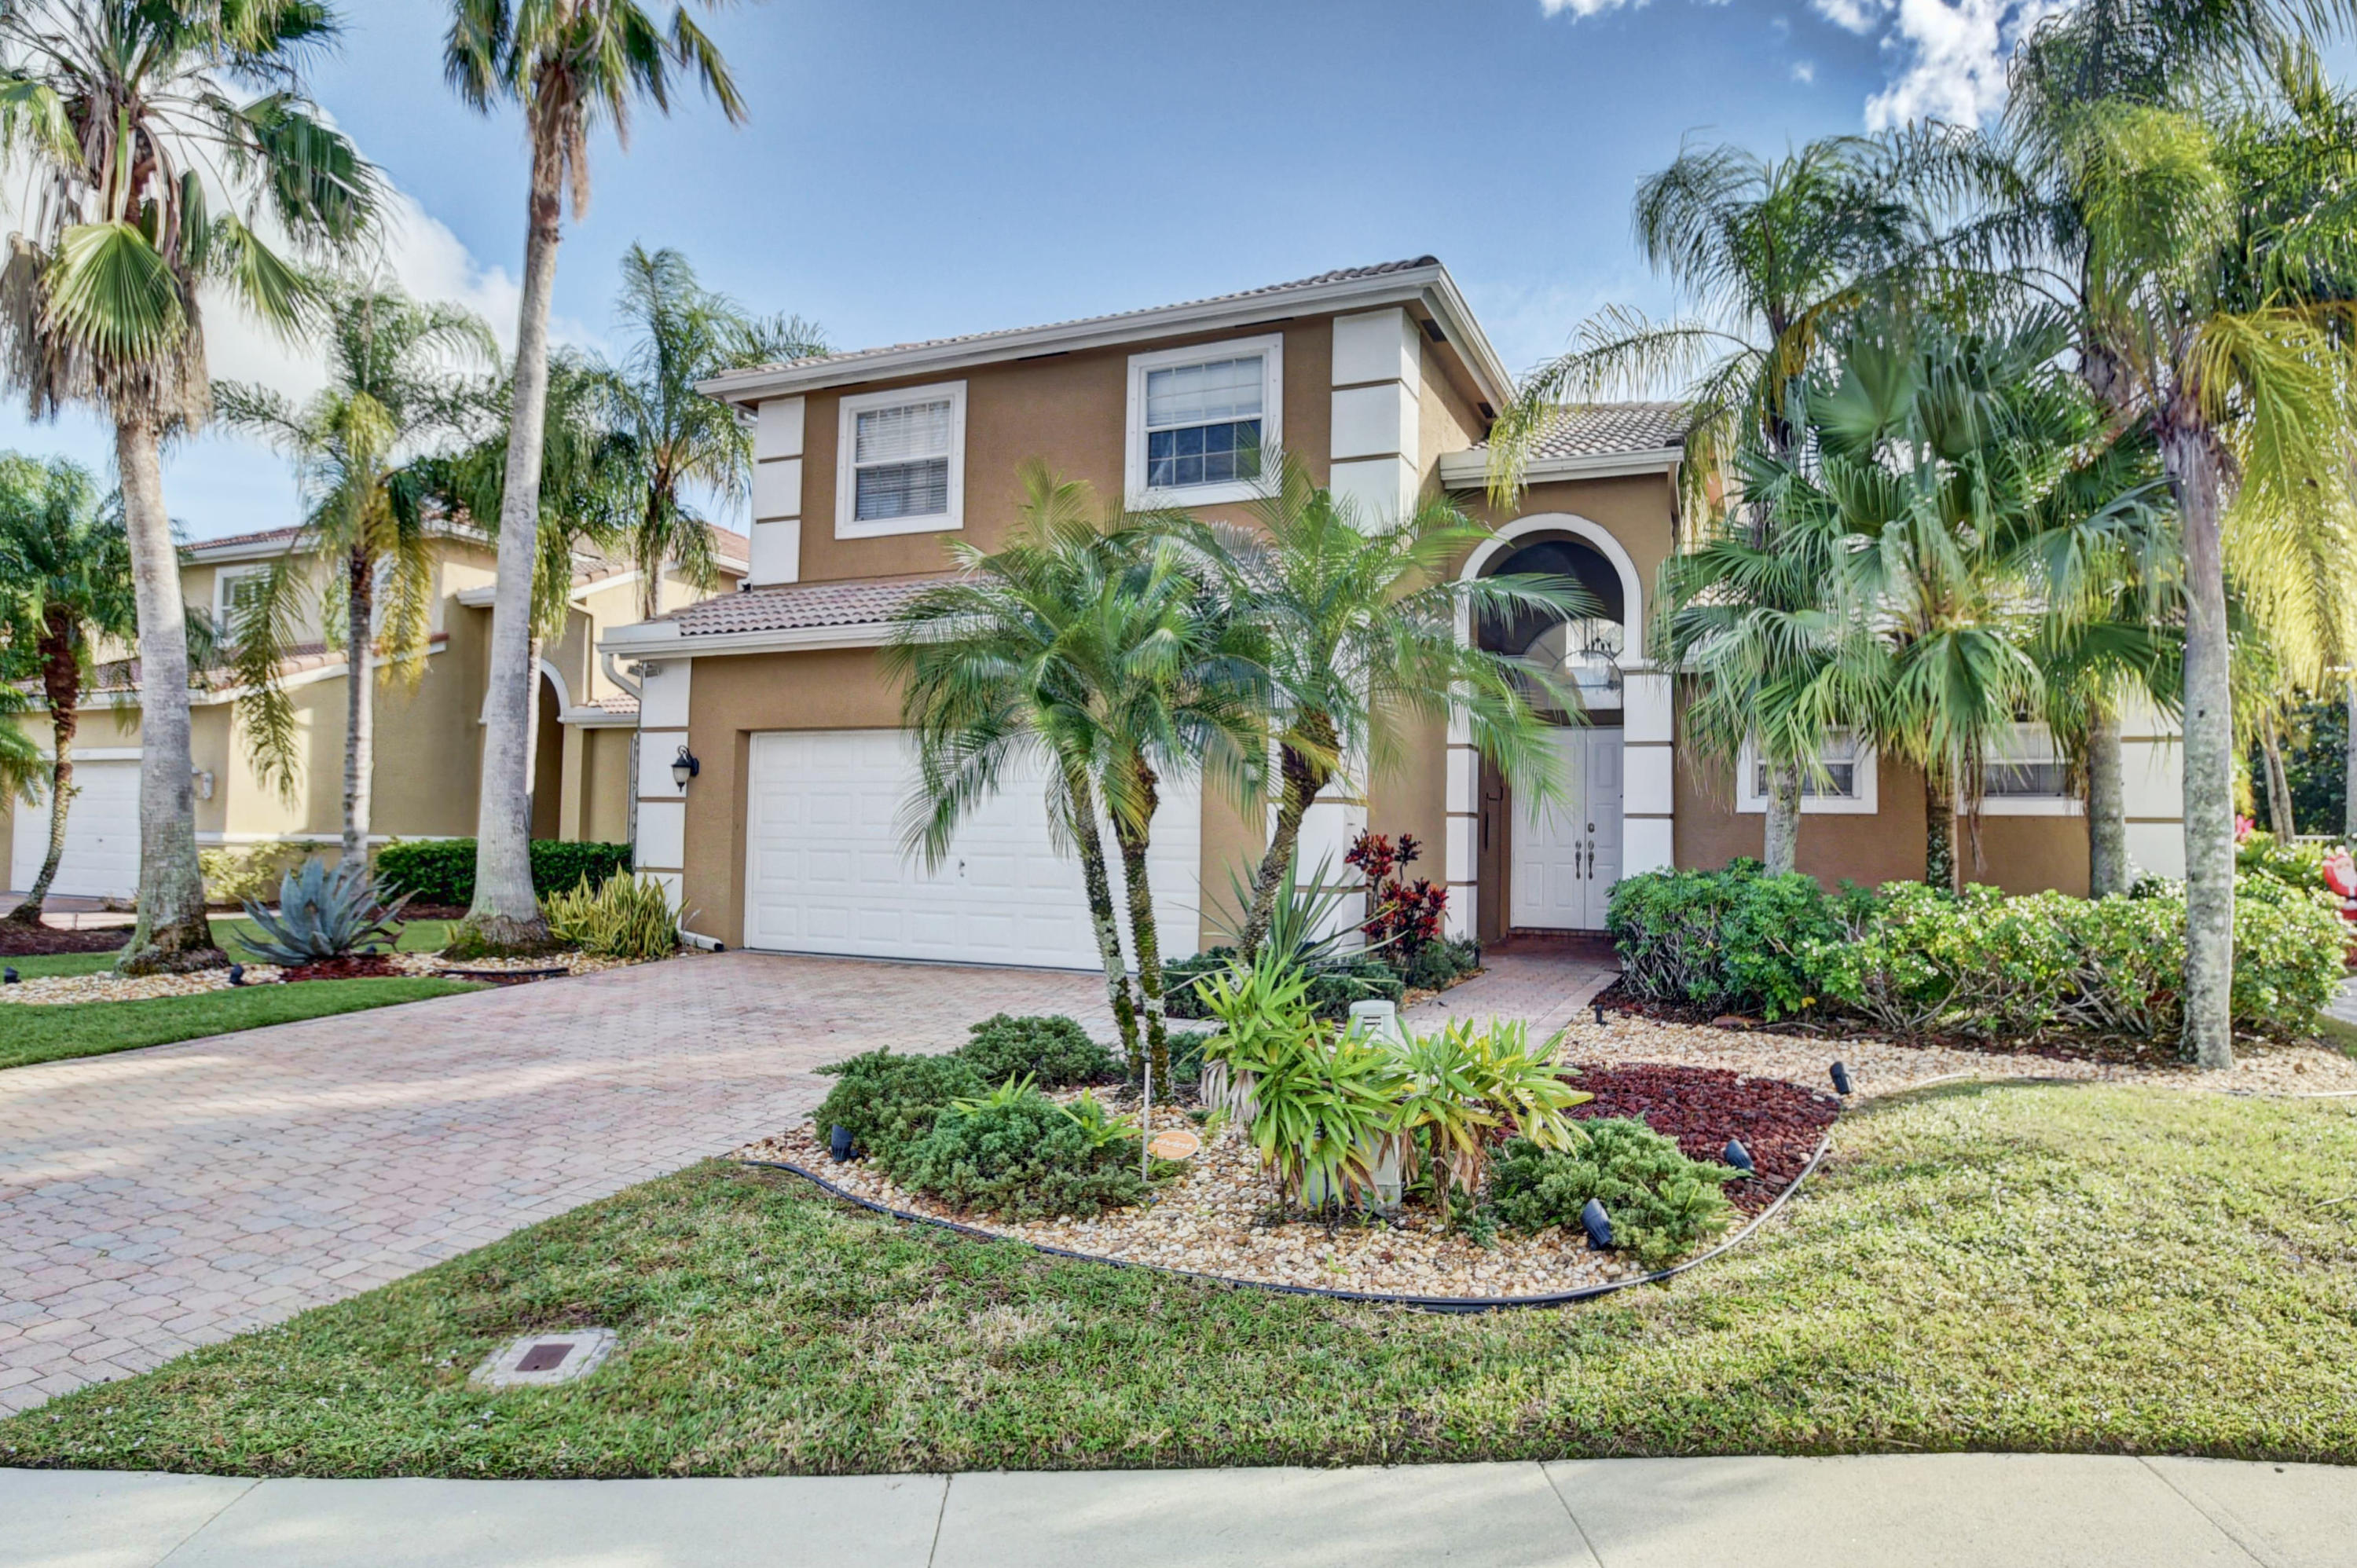 Photo of 11375 Sea Grass Circle, Boca Raton, FL 33498